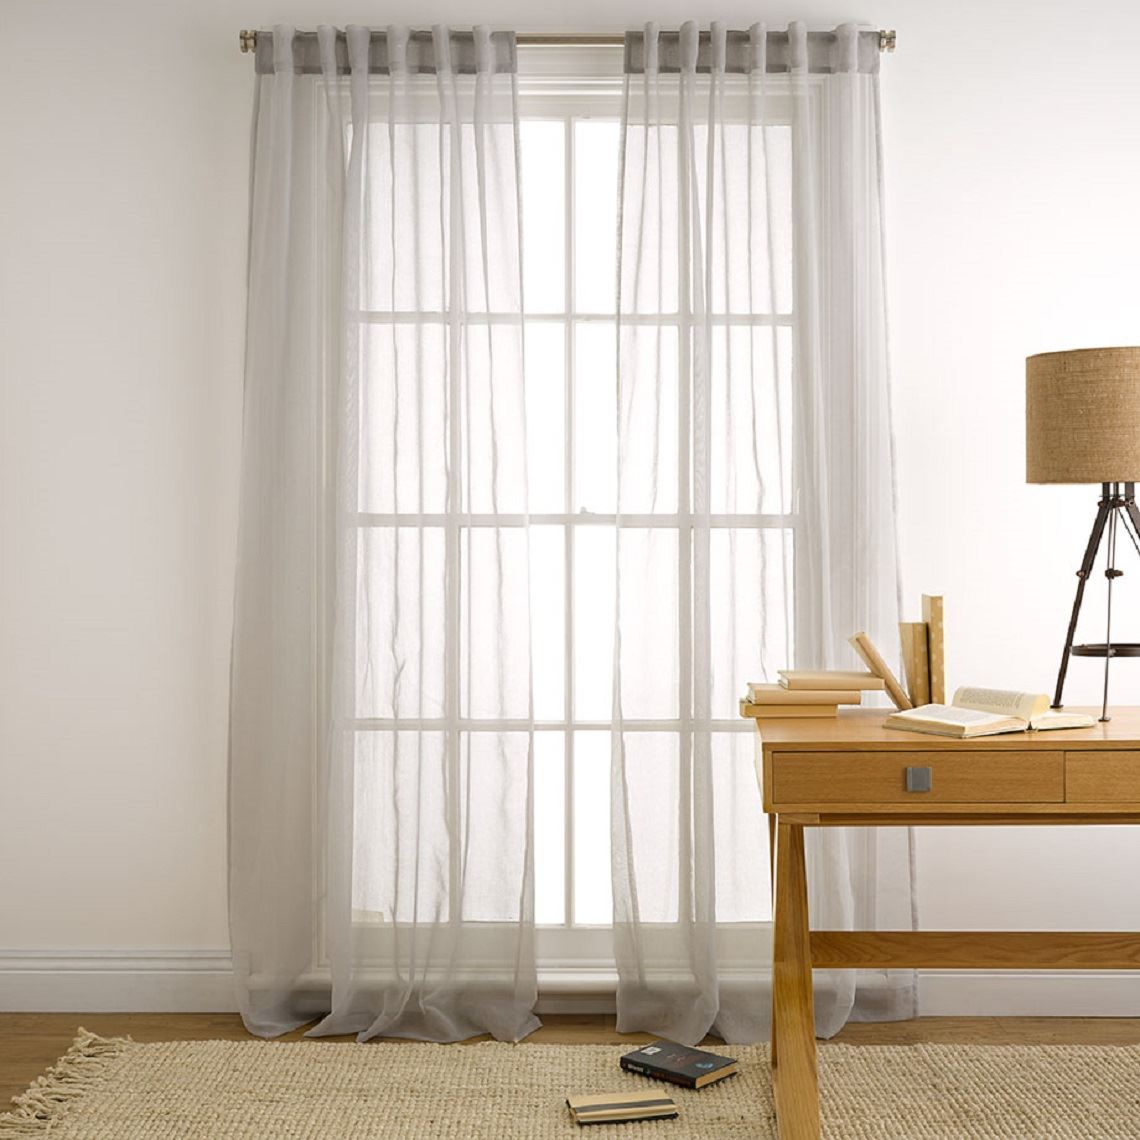 Mineral Tab Curtain Size W 180cm x D 1cm x H 250cm in Silver 100% Polyester Freedom by Freedom, a Curtains for sale on Style Sourcebook